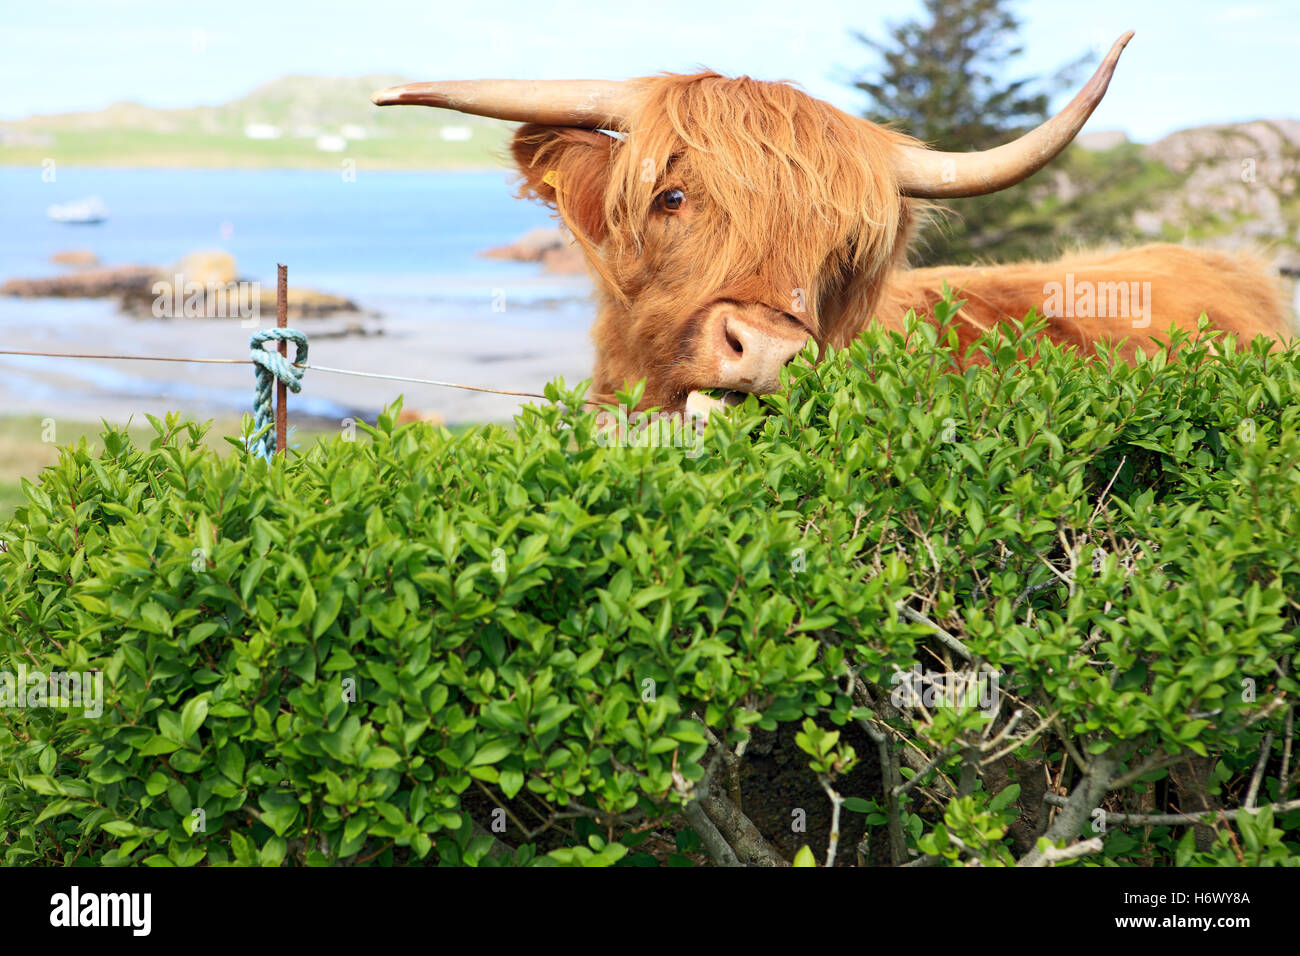 highland-cow-eating-a-hedge-as-there-are